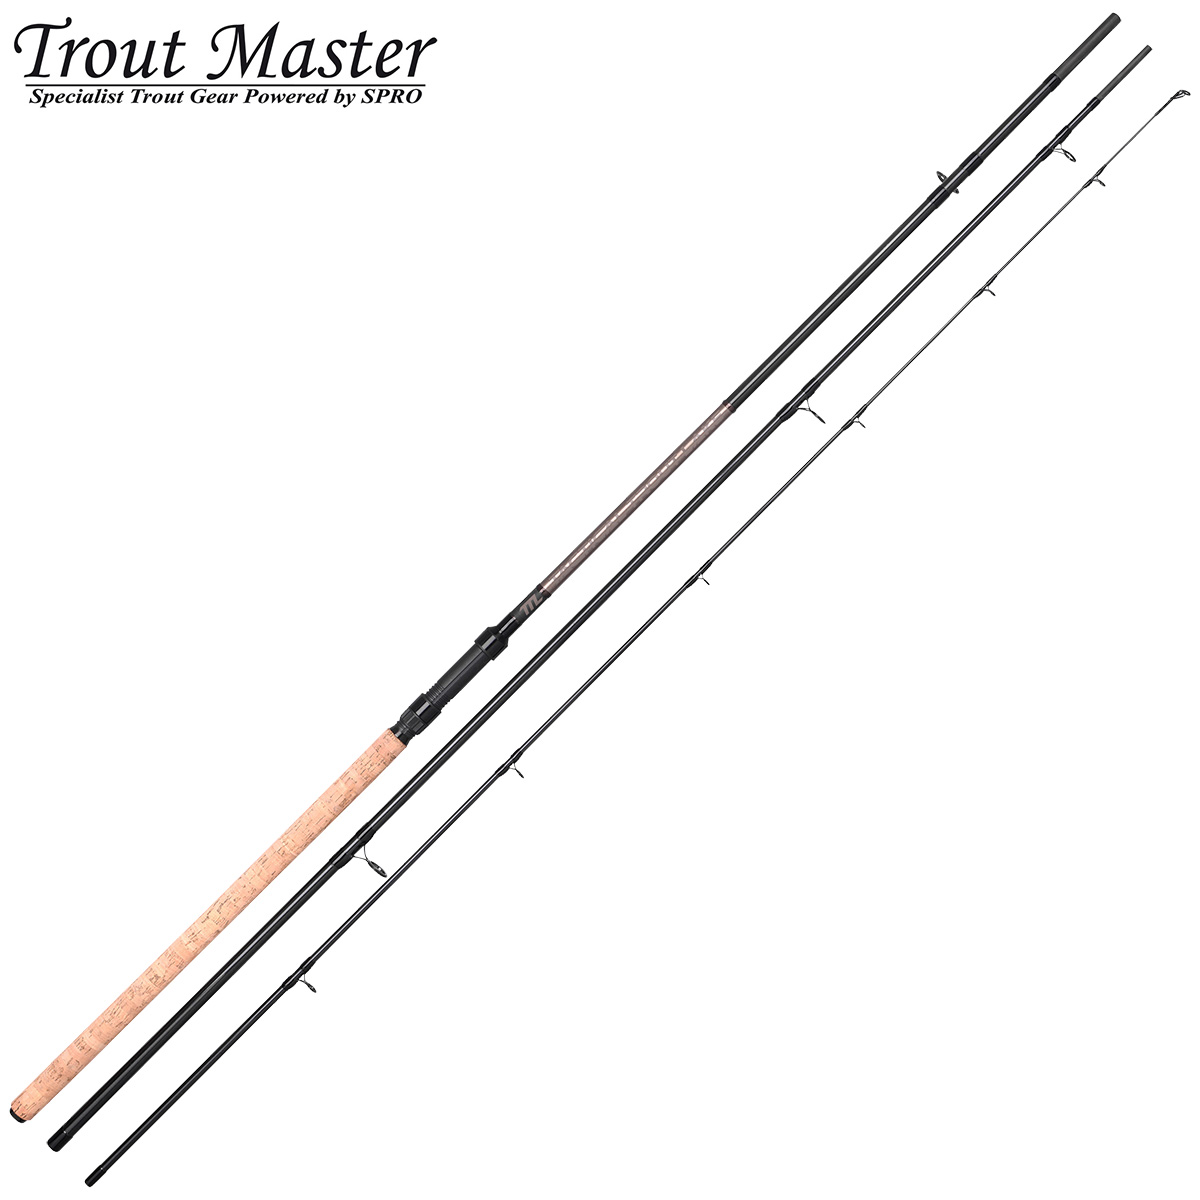 "SPRO Trout Master ""TACTICAL TROUT LAKE"" 3-teilige Forellenrute"